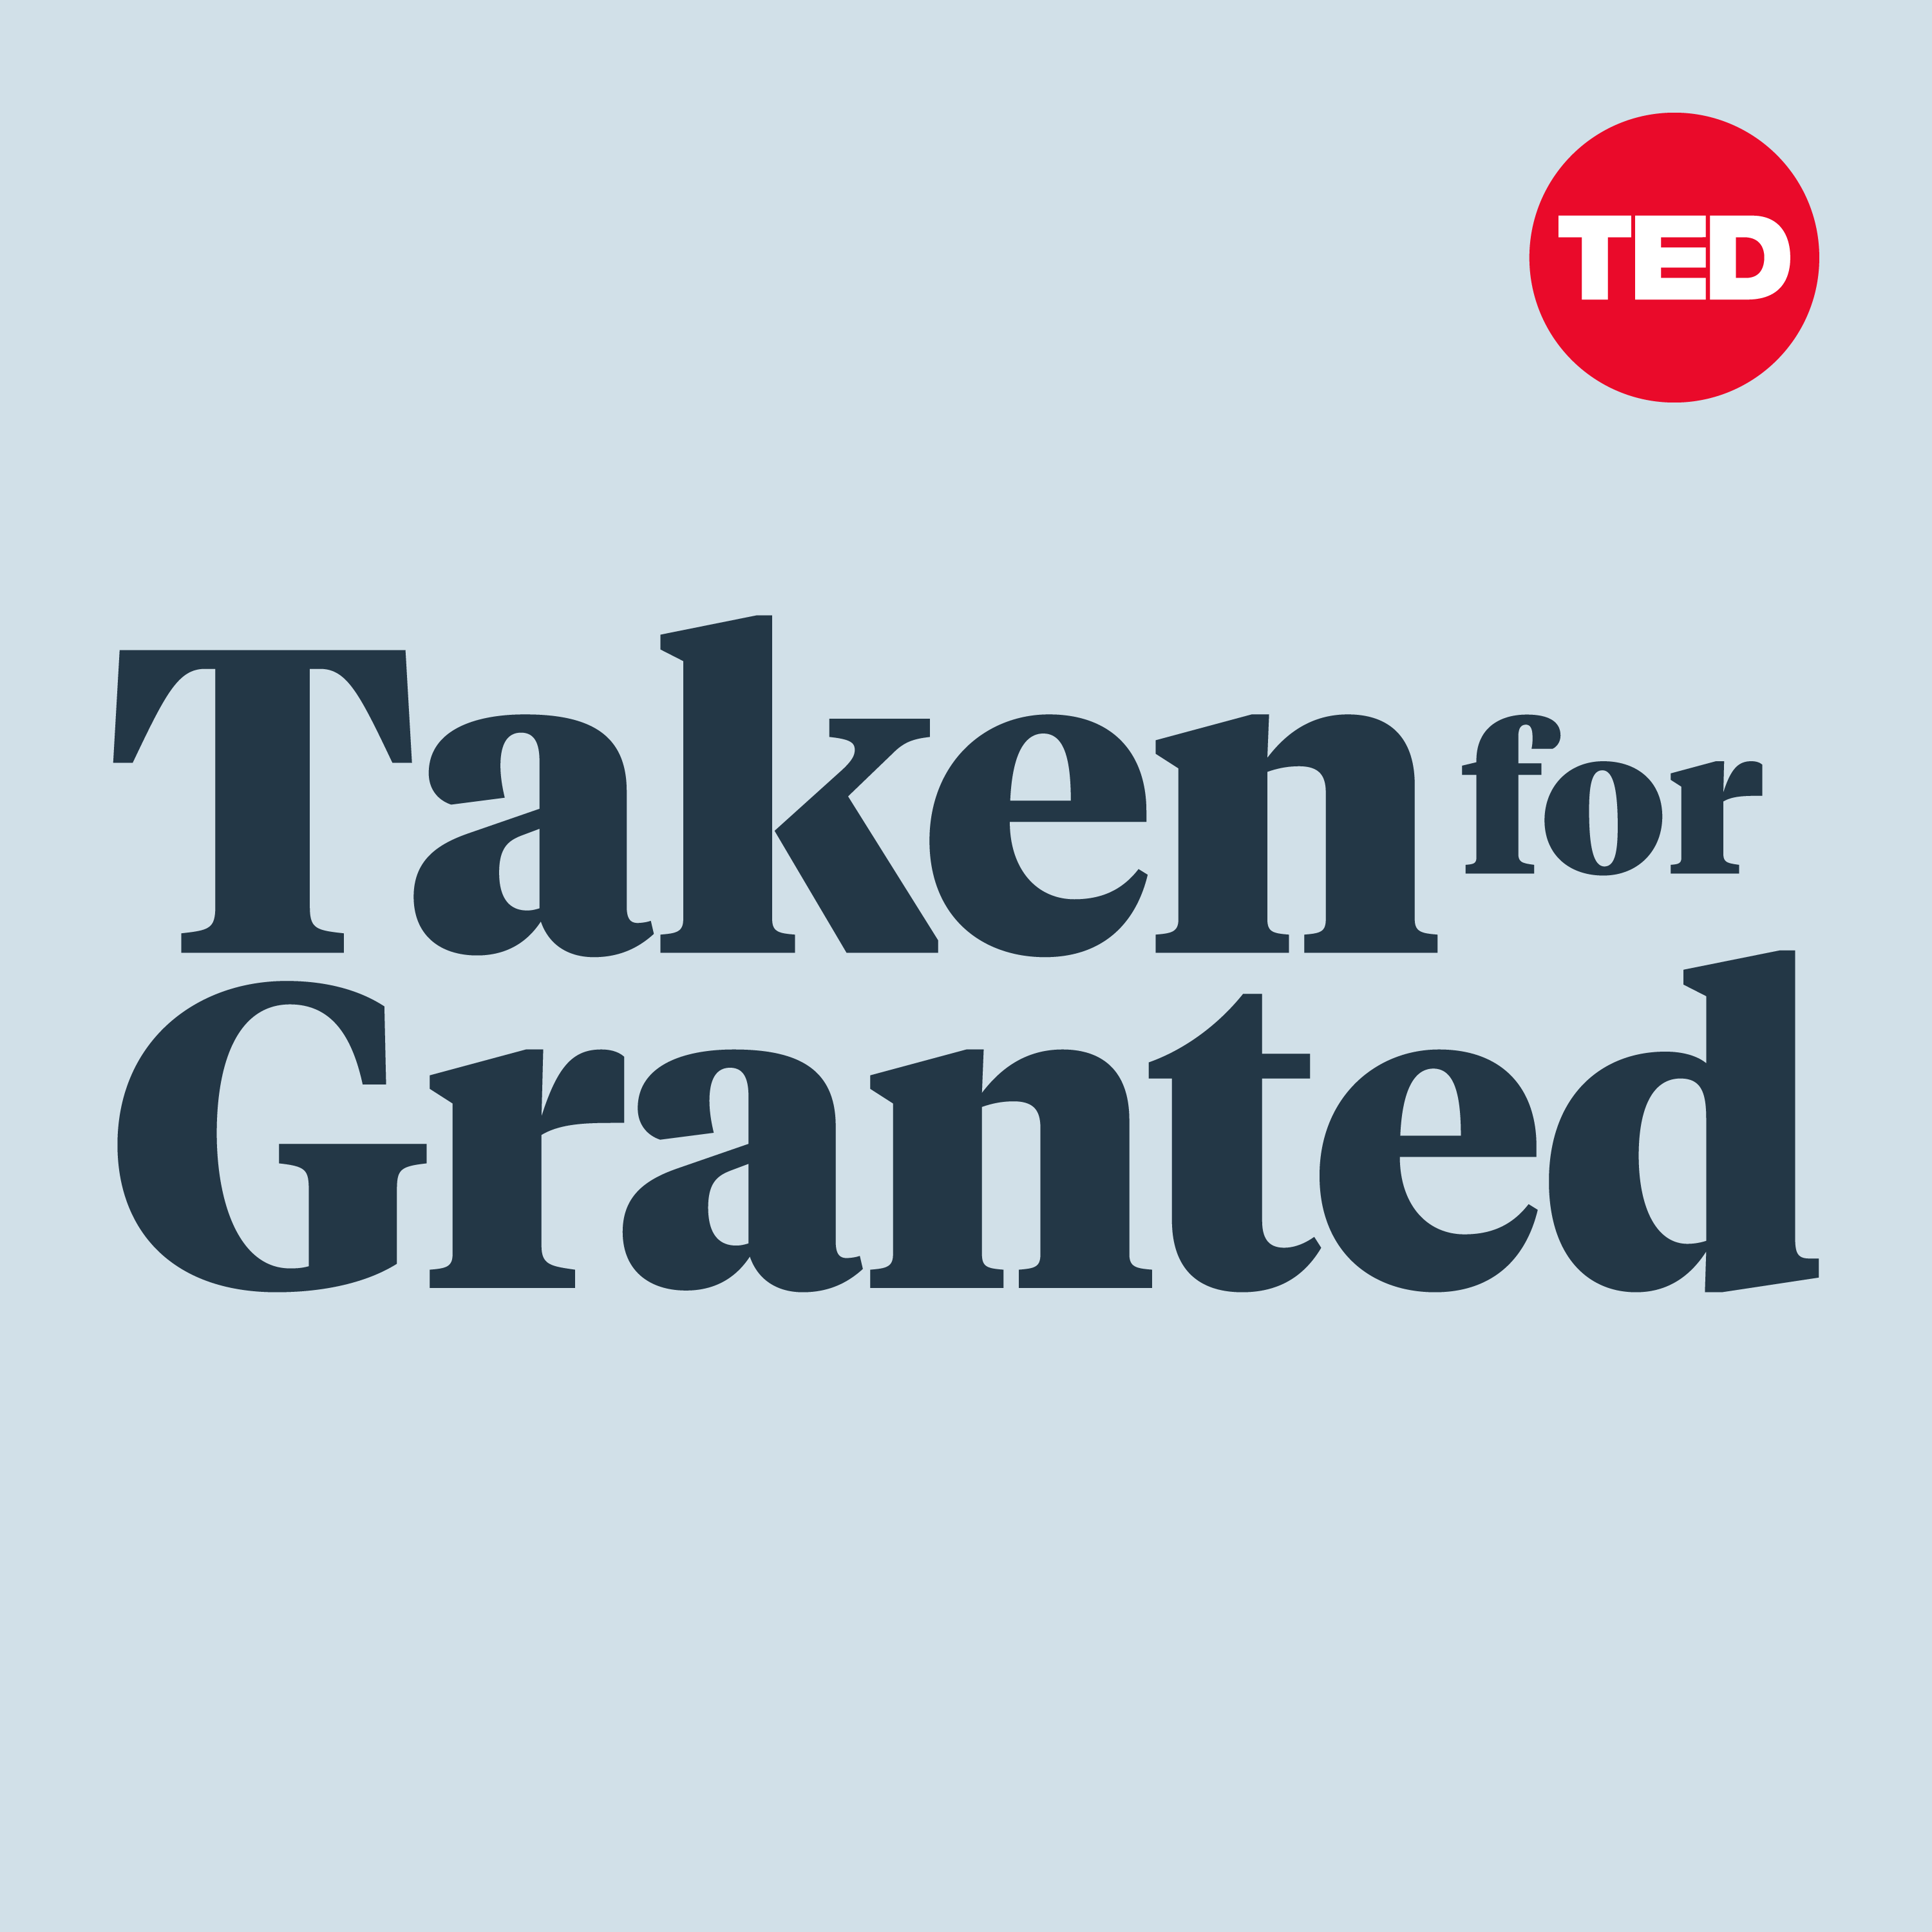 Taken for Granted: John Green Wants You to Pay Attention to Your Attention